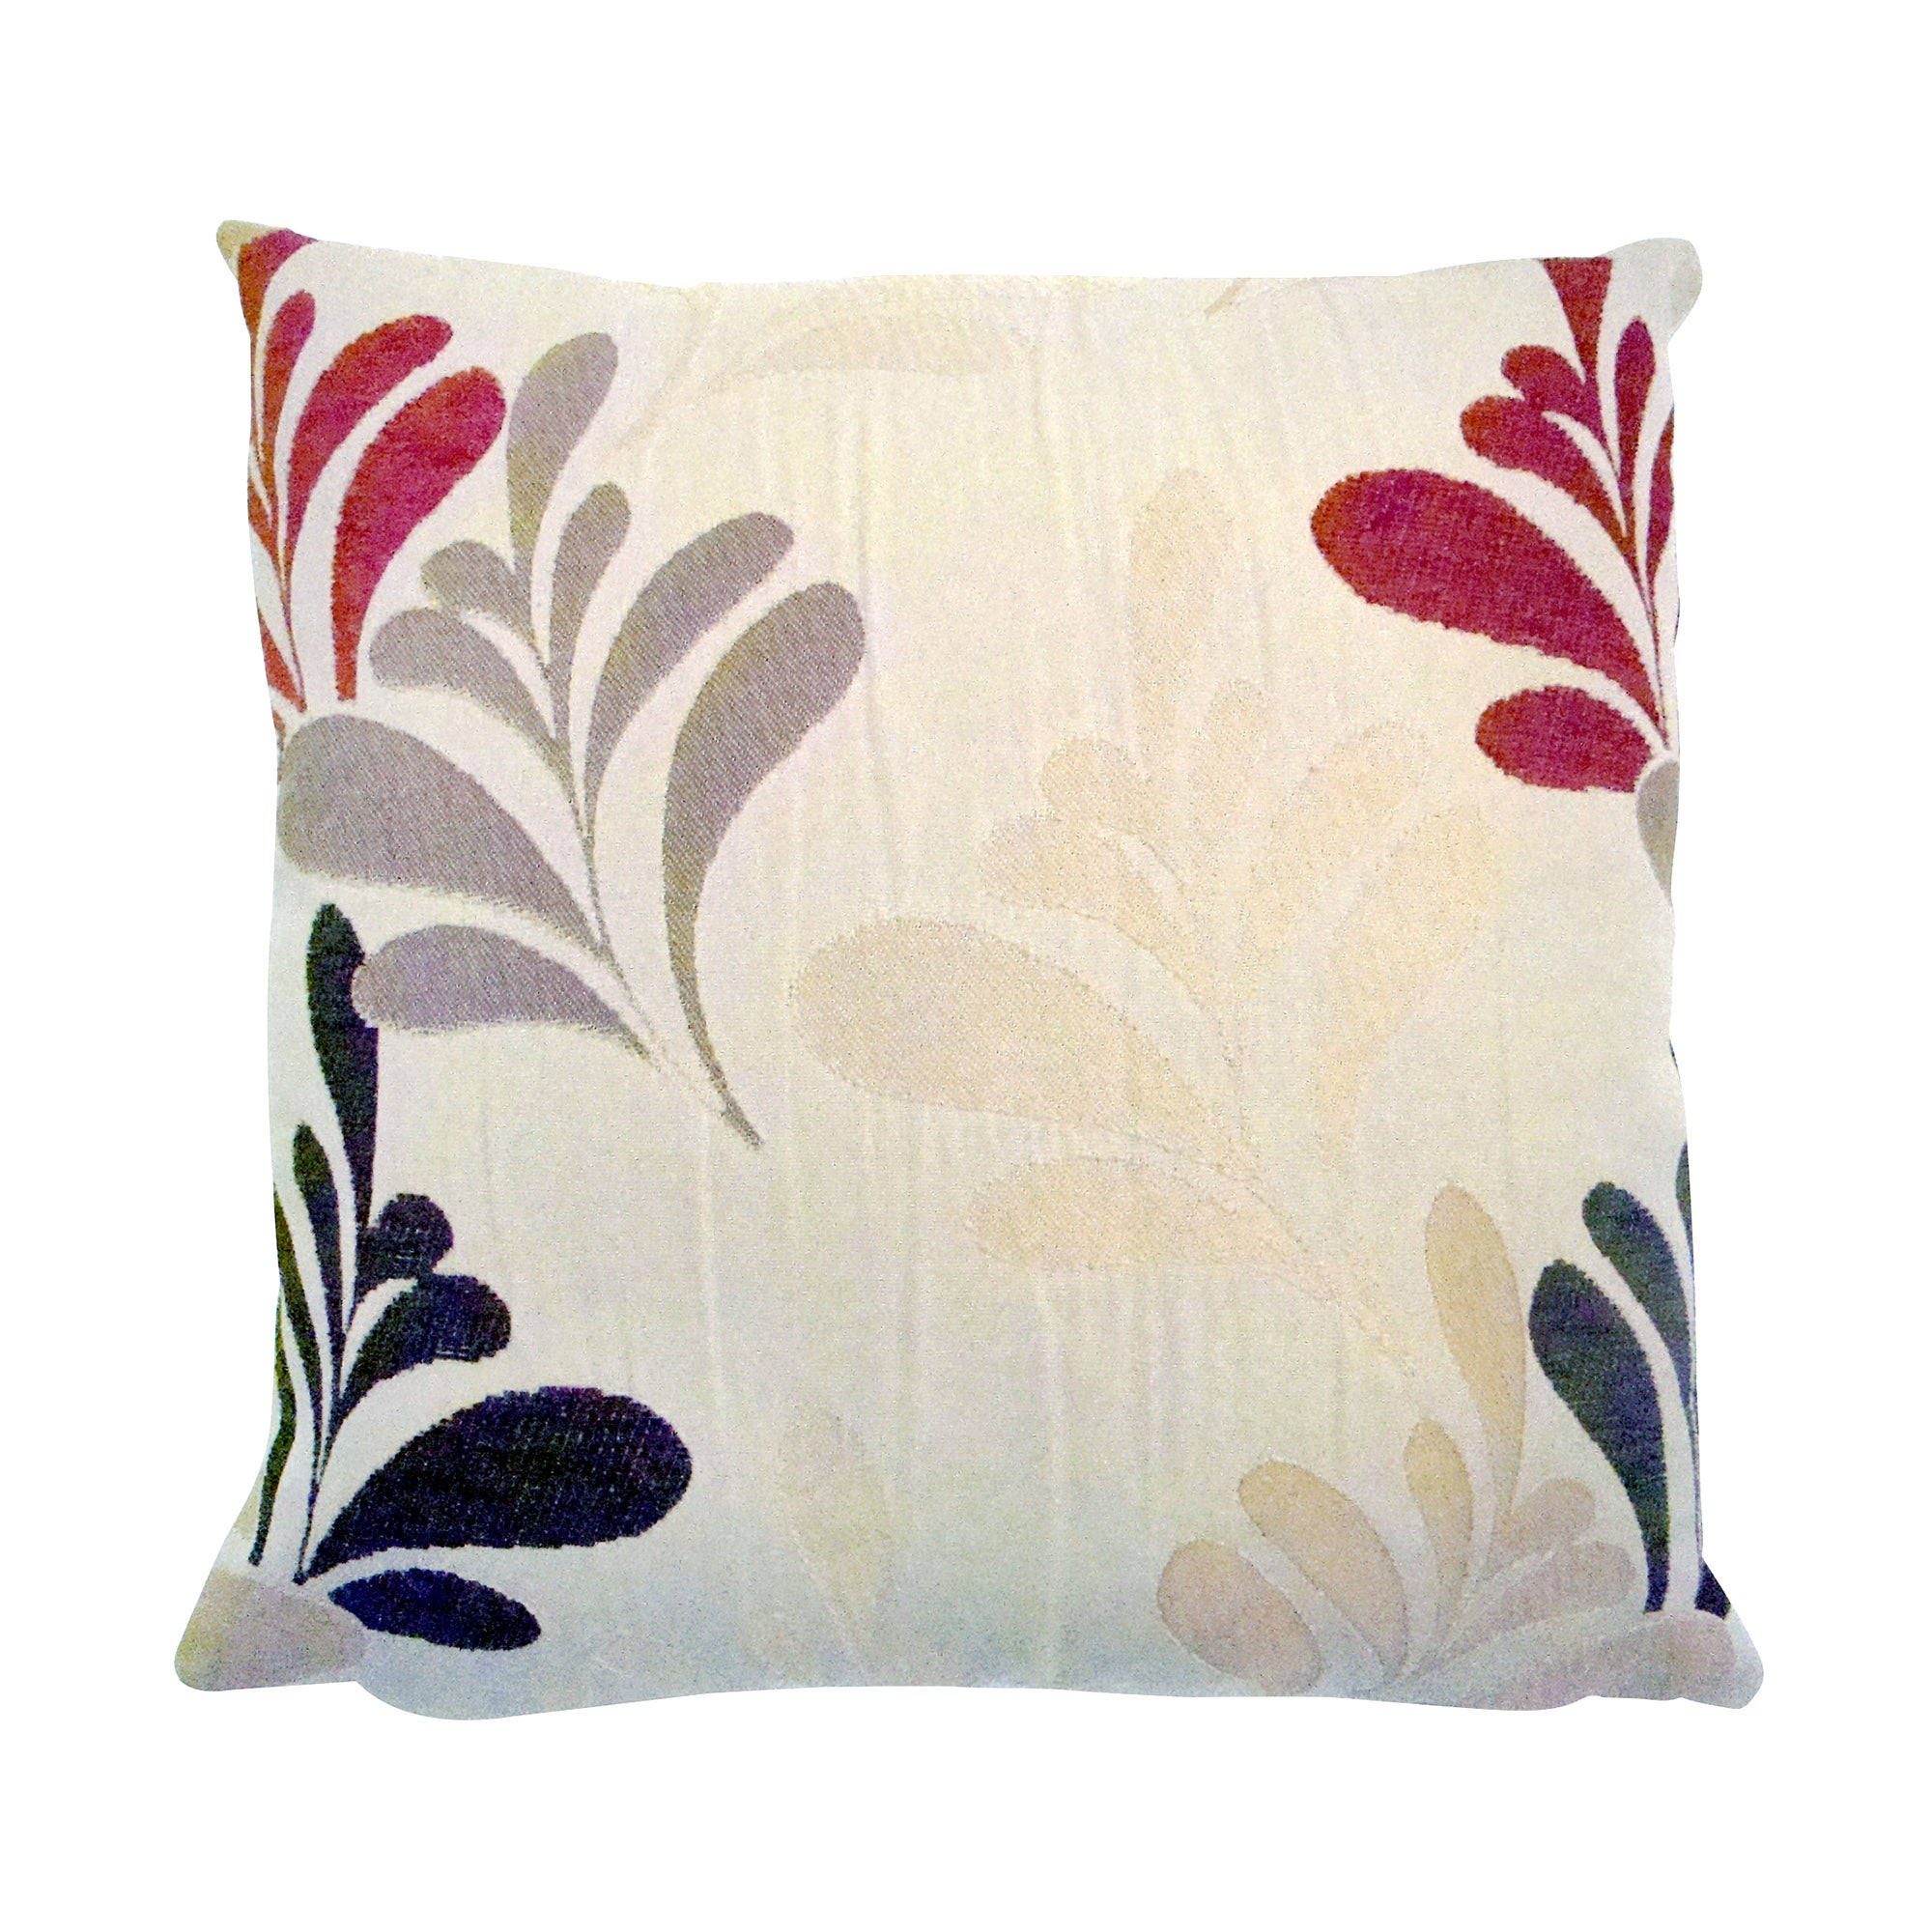 Terracotta Riva Cushion Cover